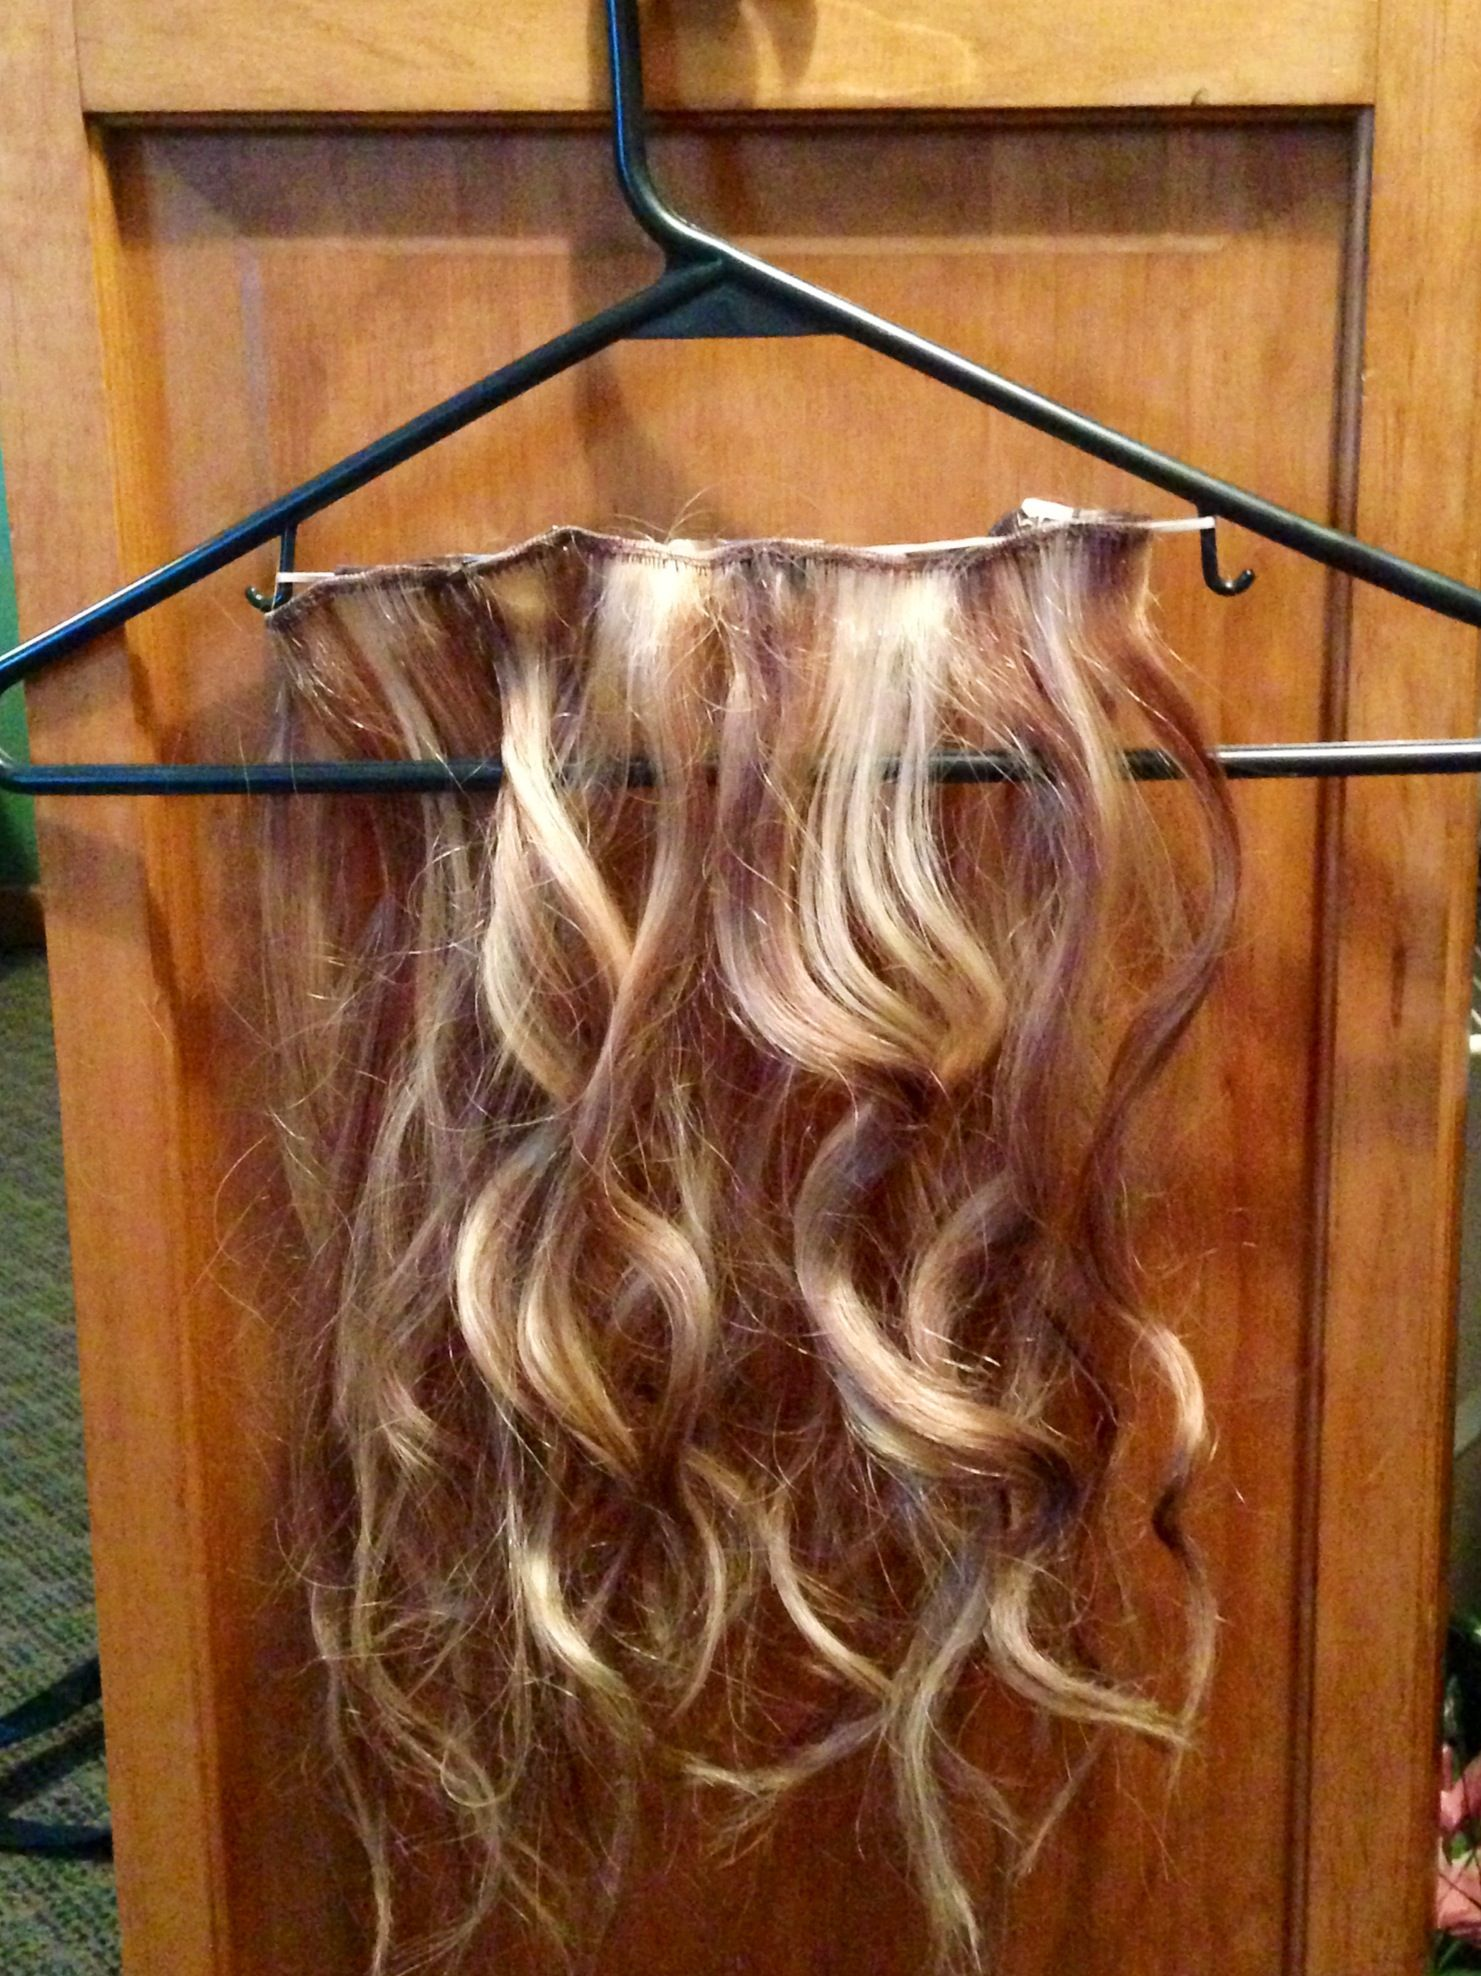 Diy Holder For Your Hair Extensions Clip Your Extensions On The The